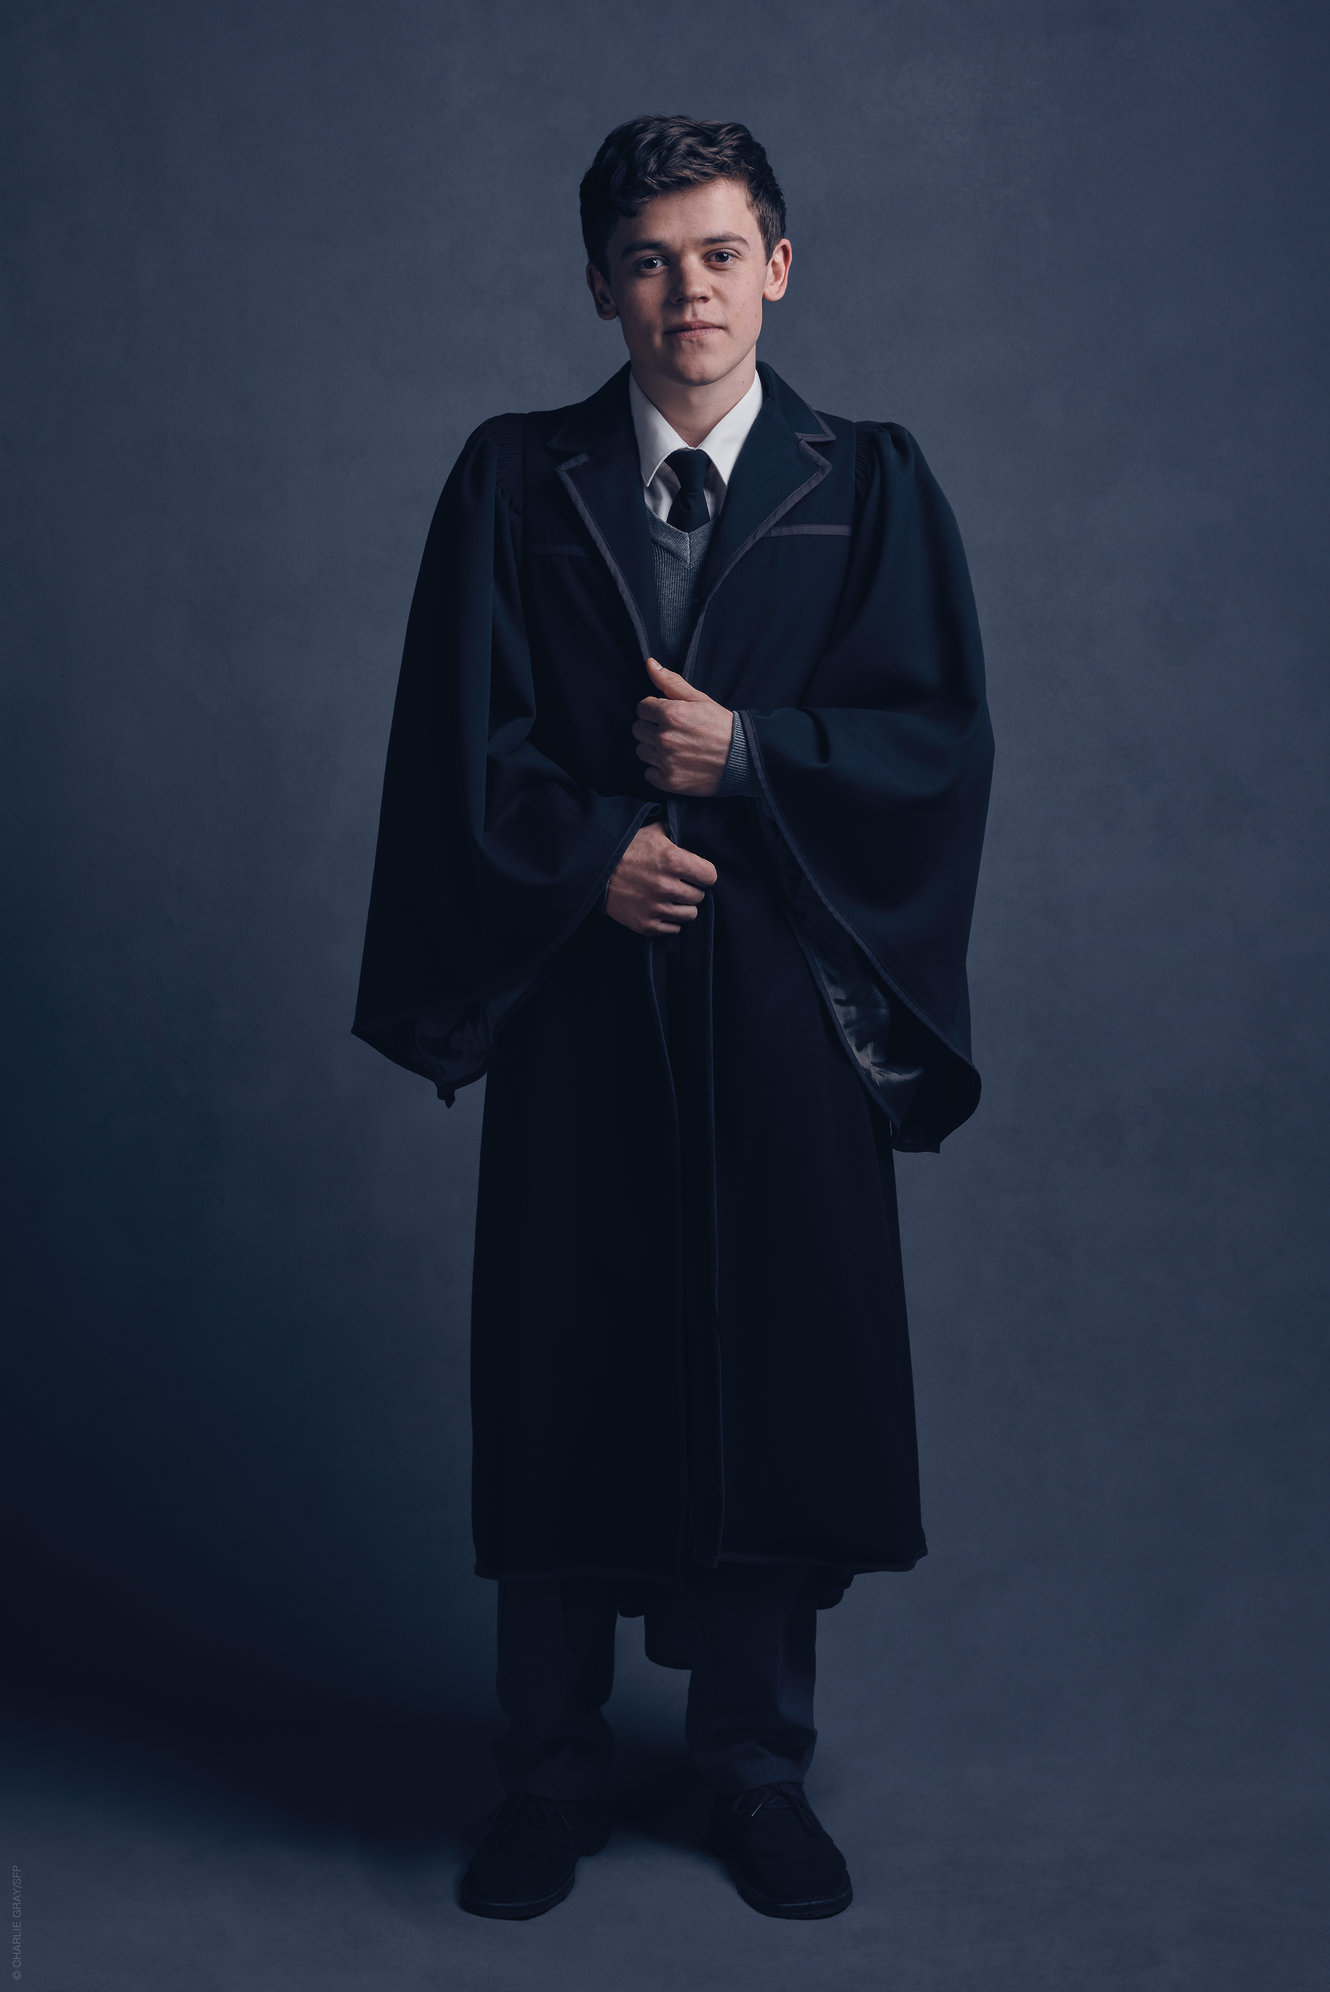 Cast Photos For New Harry Potter Revealed, And Harry Looks Old HP 19889 Albus FL